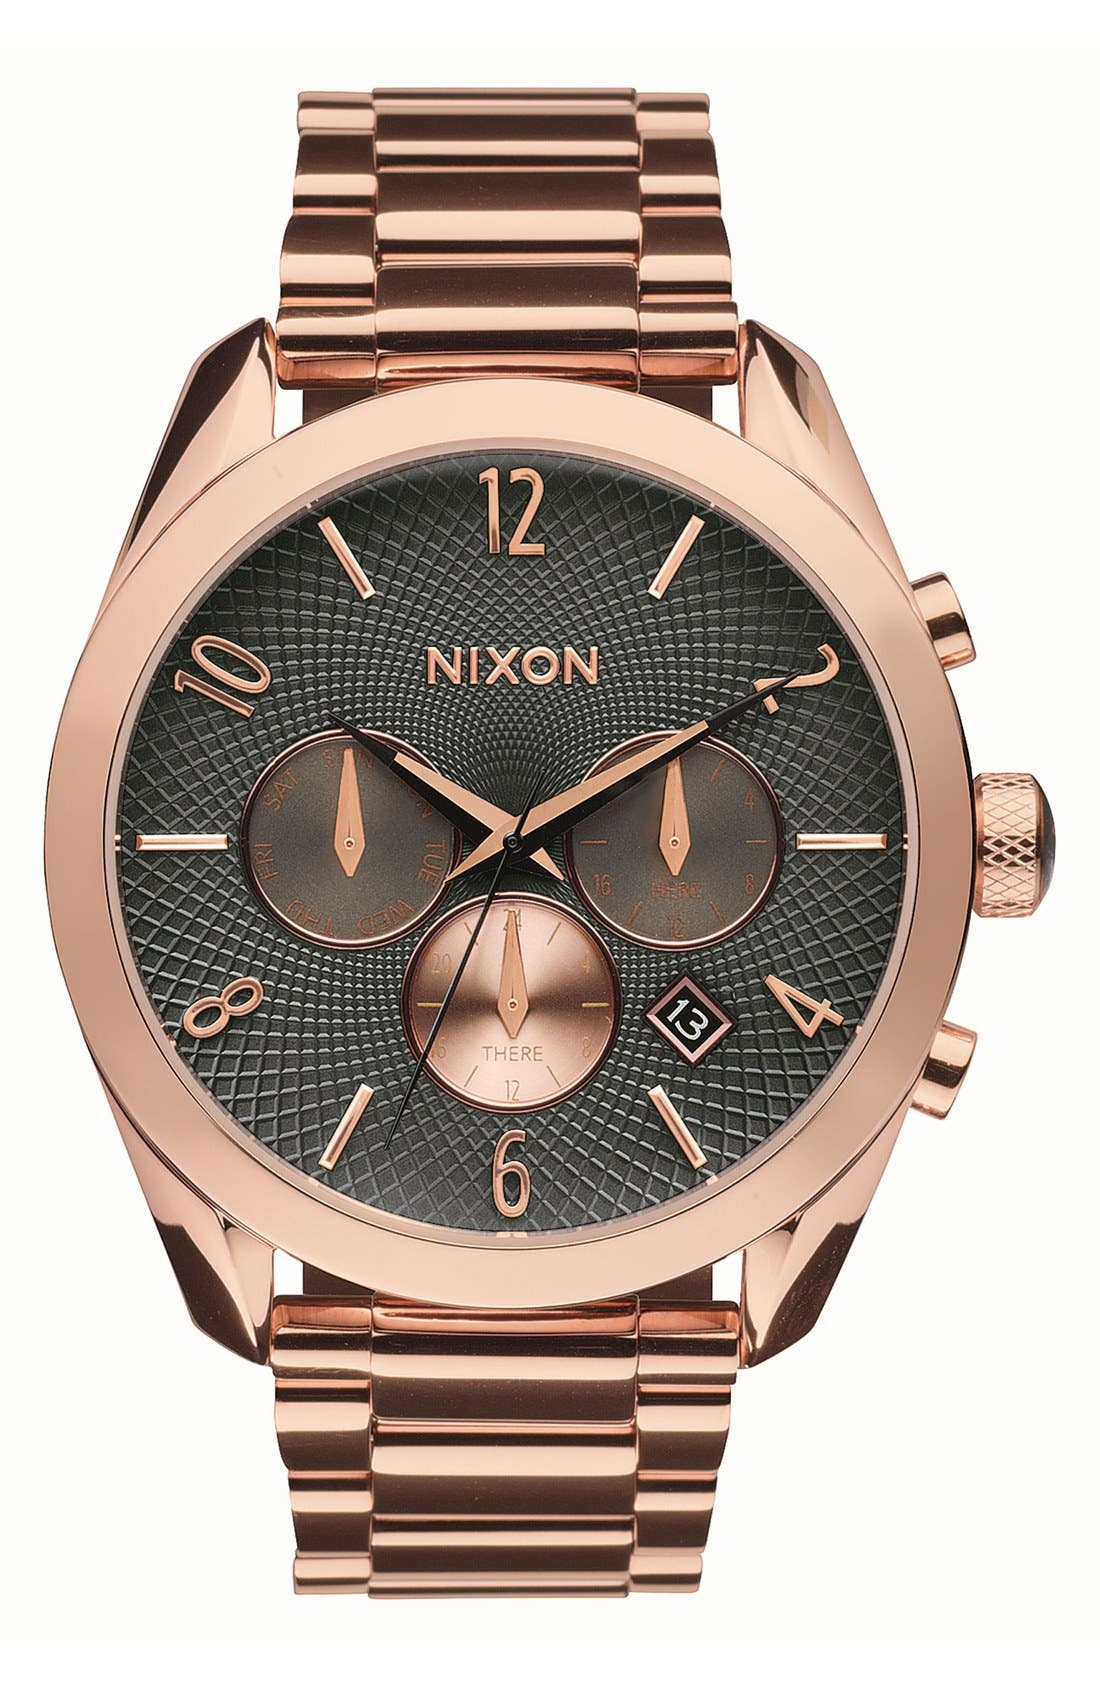 NIXON Bullet Guilloche Chronograph Bracelet Watch, 42mm